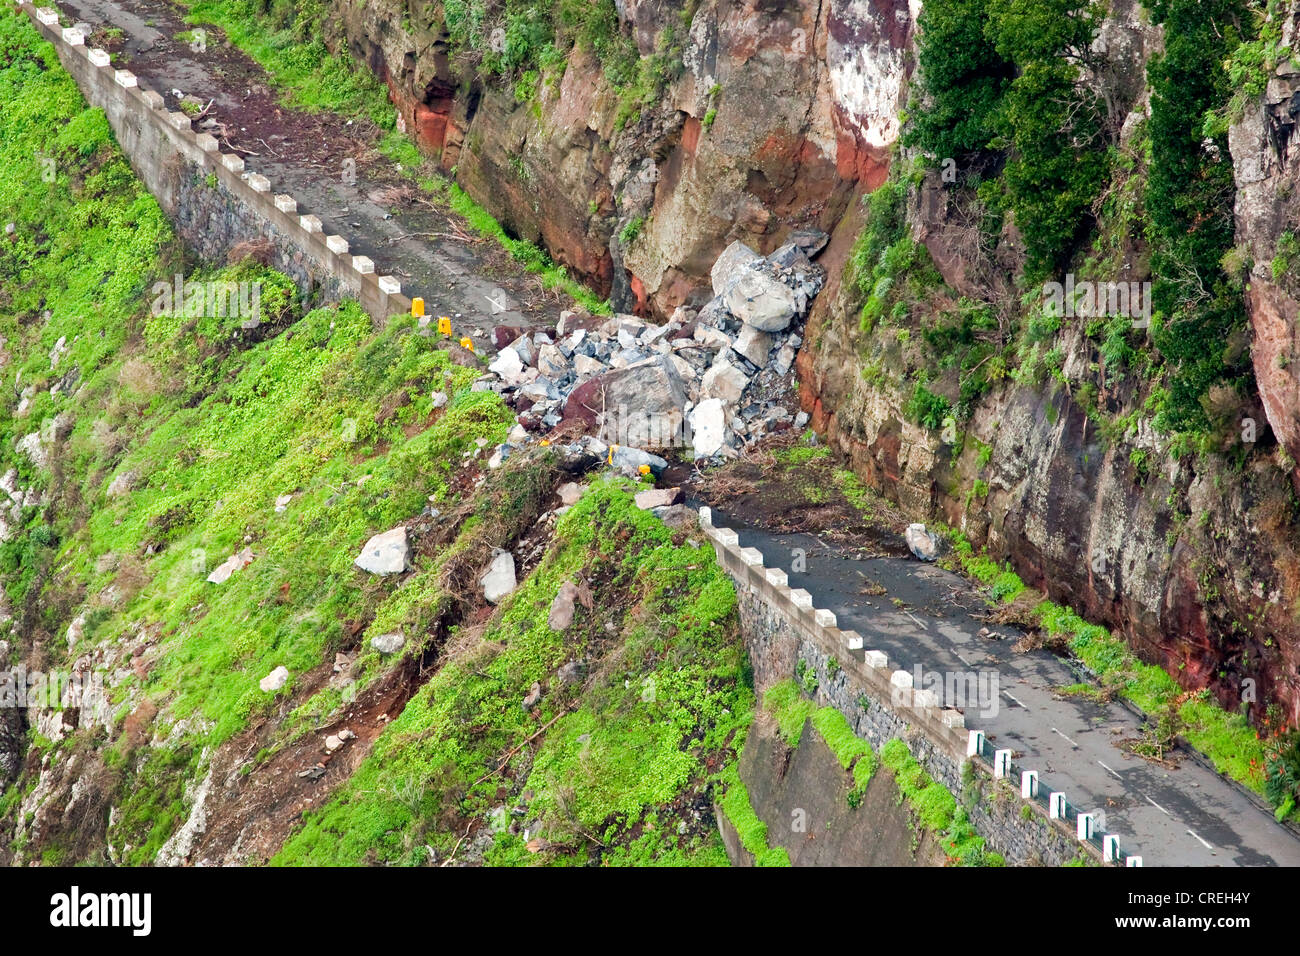 Road blocked by a landslide, Corral of the Nuns or Curral das Freiras, Madeira, Portugal, Europe Stock Photo